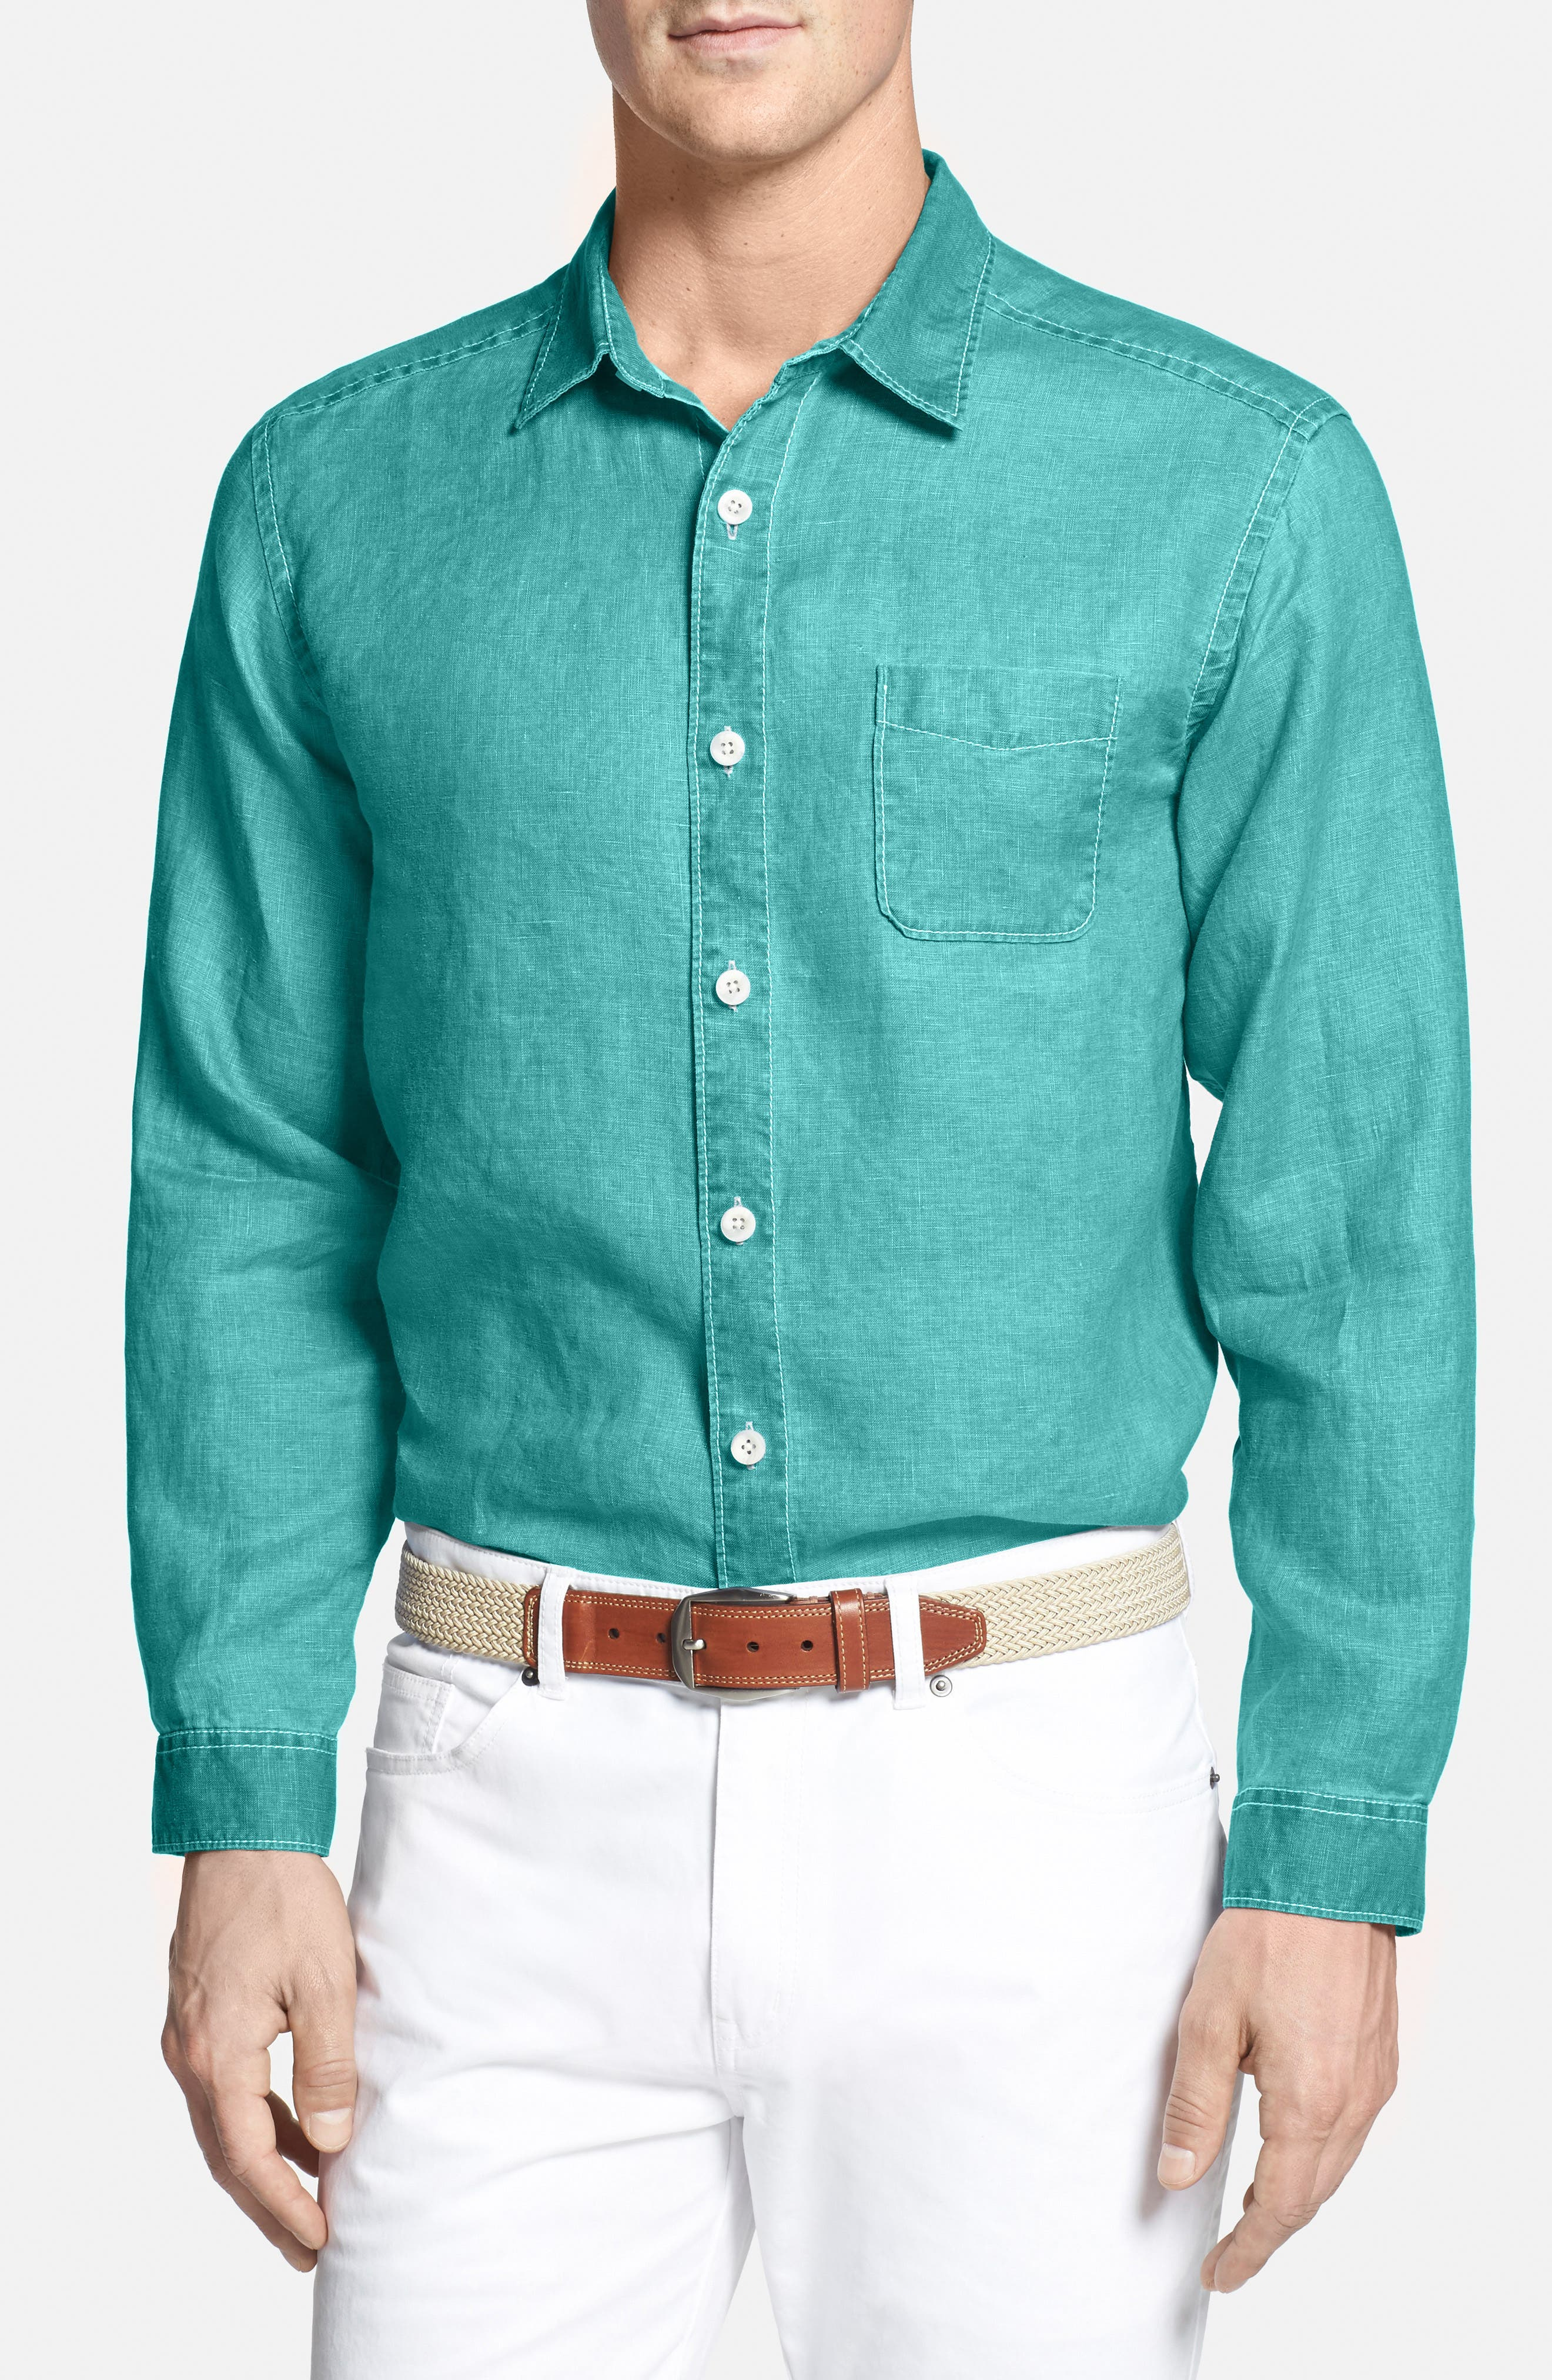 Alternate Image 1 Selected - Tommy Bahama Sea Glass Breezer Linen Sport Shirt